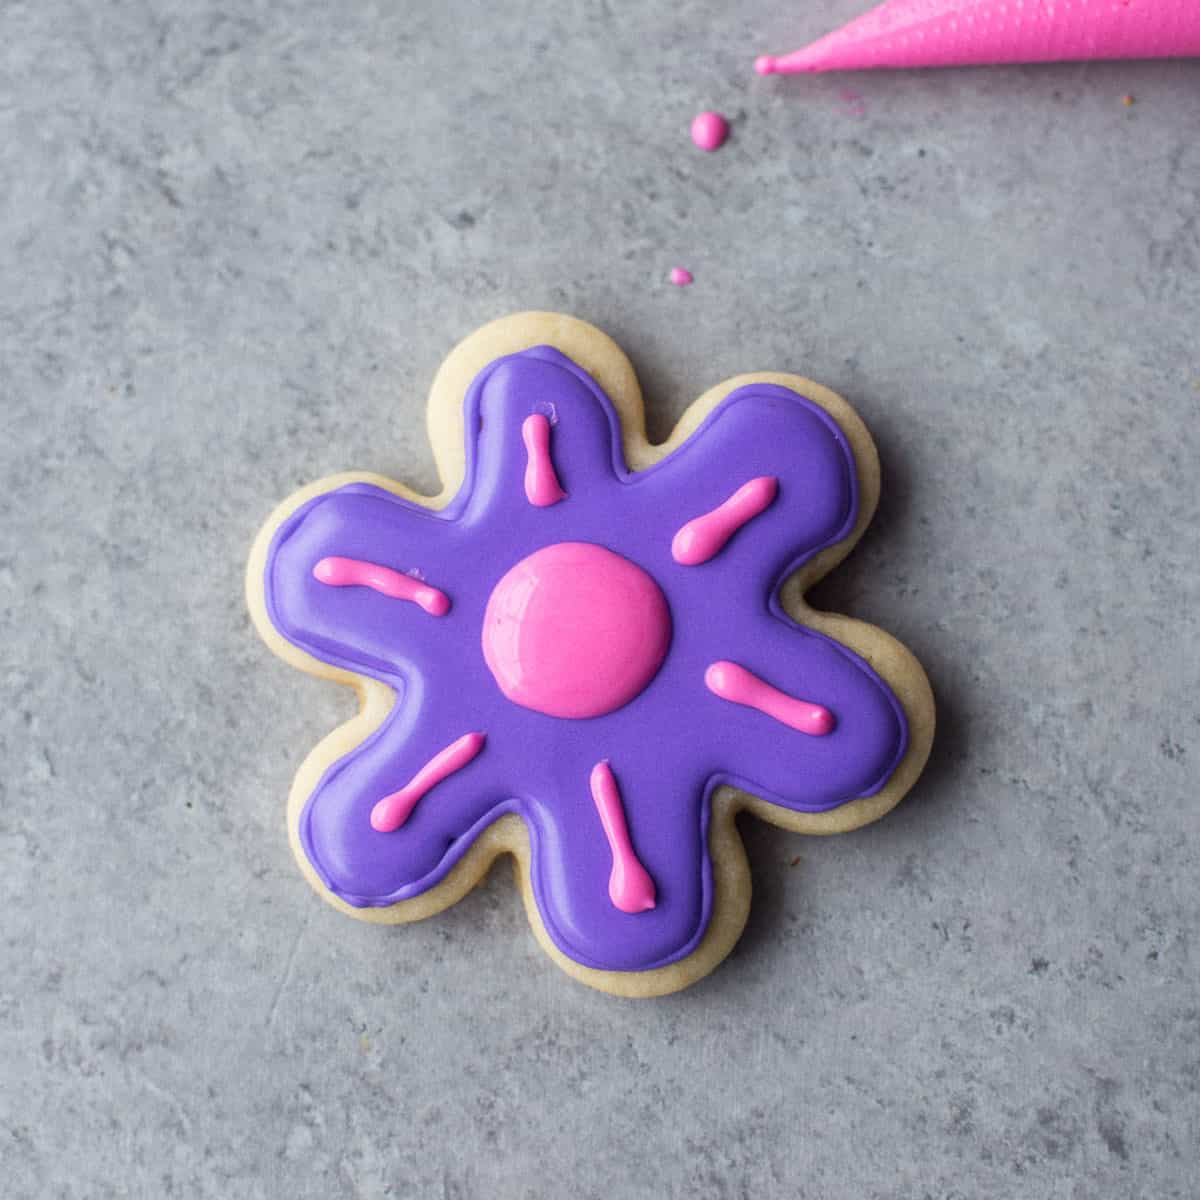 icing a flower shaped sugar cookie